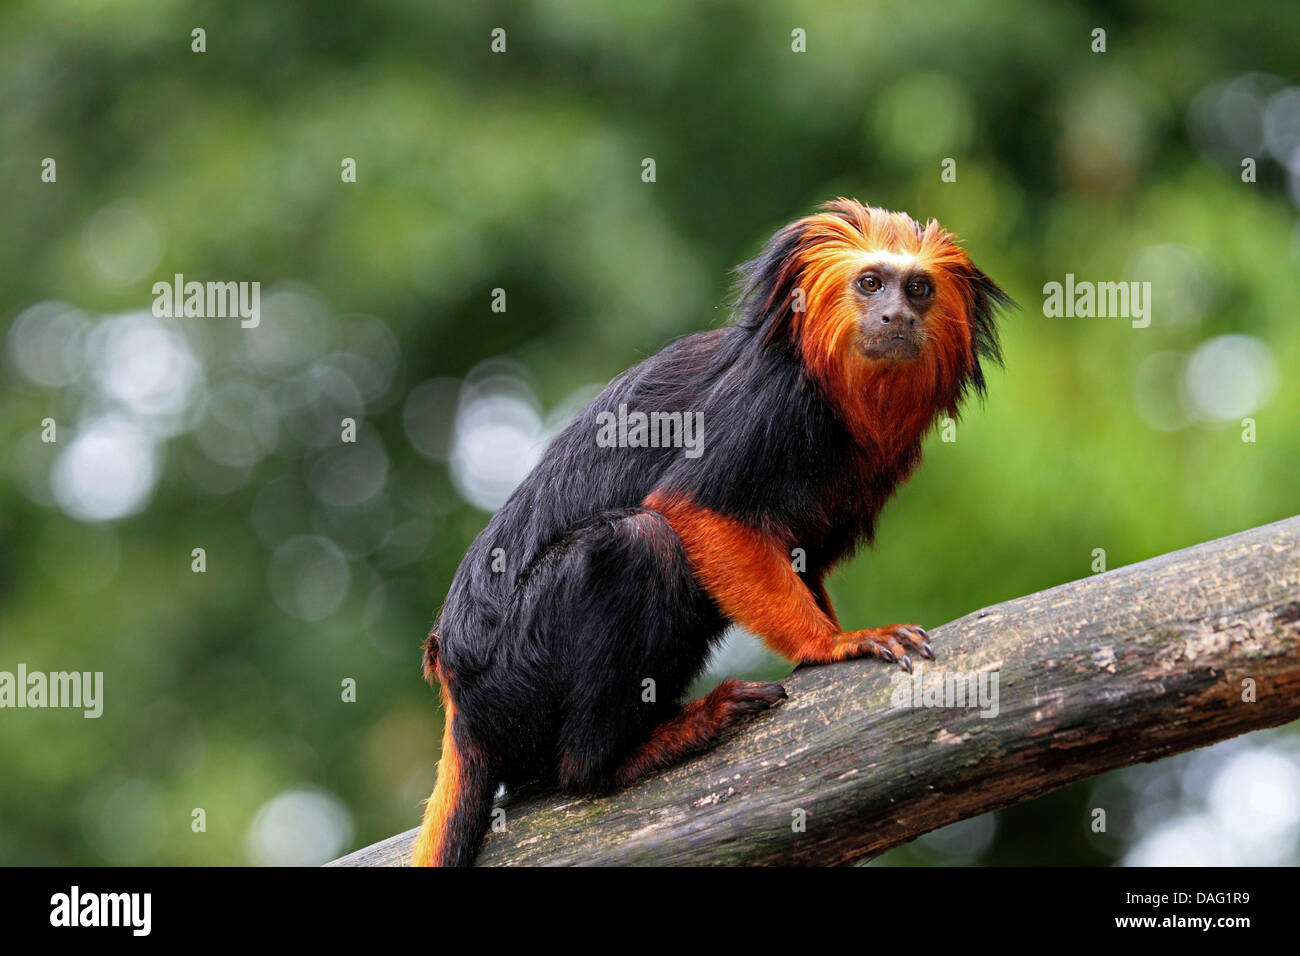 a description of golden marmosets also called leontopithecus chrysomelas The golden lion tamarin is one of the rarest of all mammals in the wild, if not the rarest it is certainly one of the most severely endangered of all primates in the world [3].